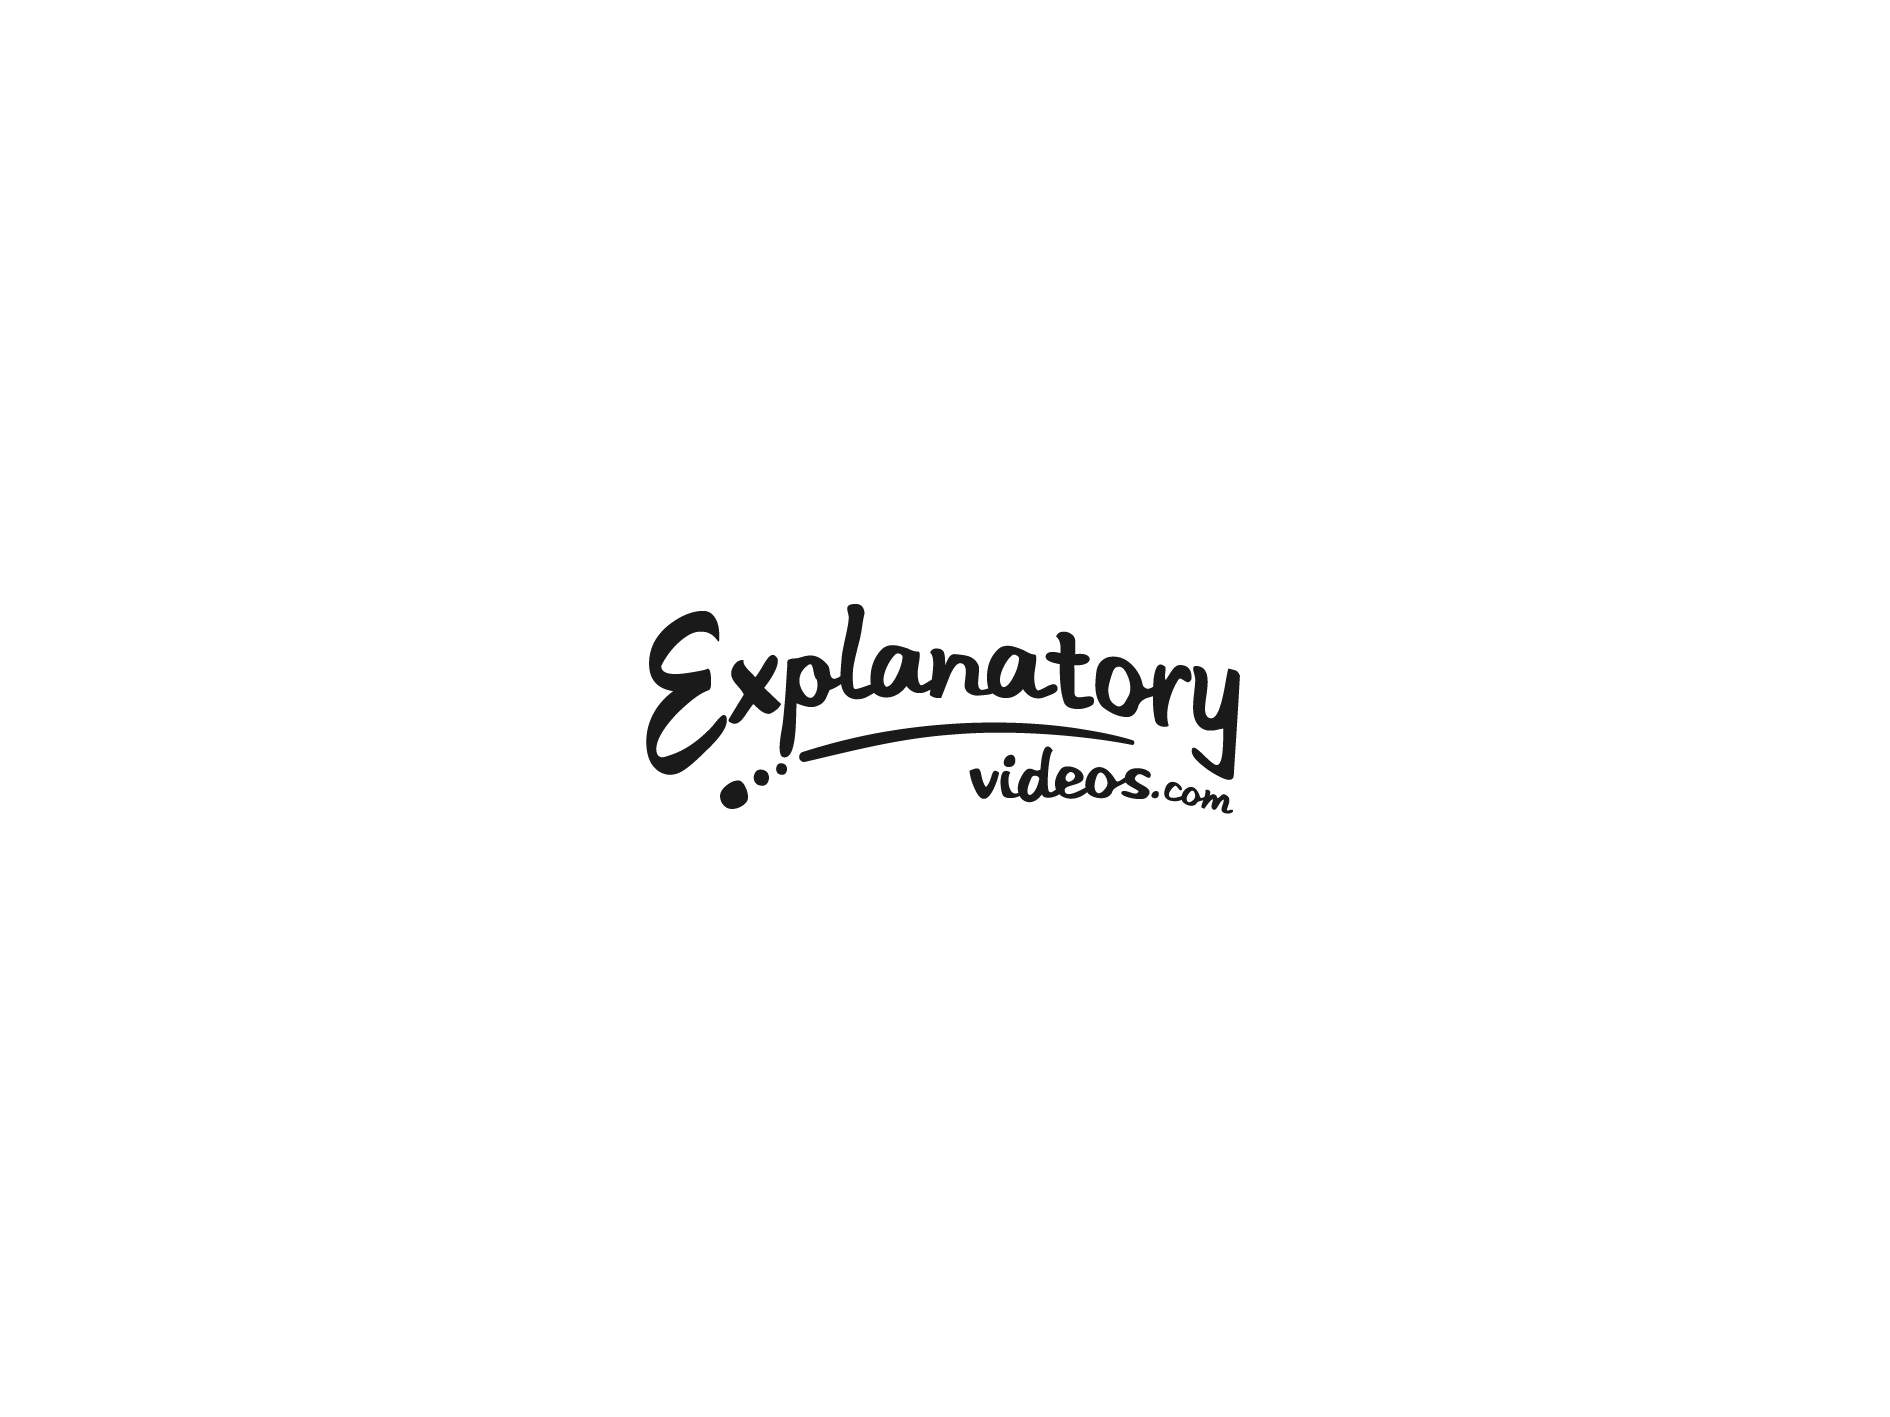 New logo wanted for ExplanatoryVideos.com